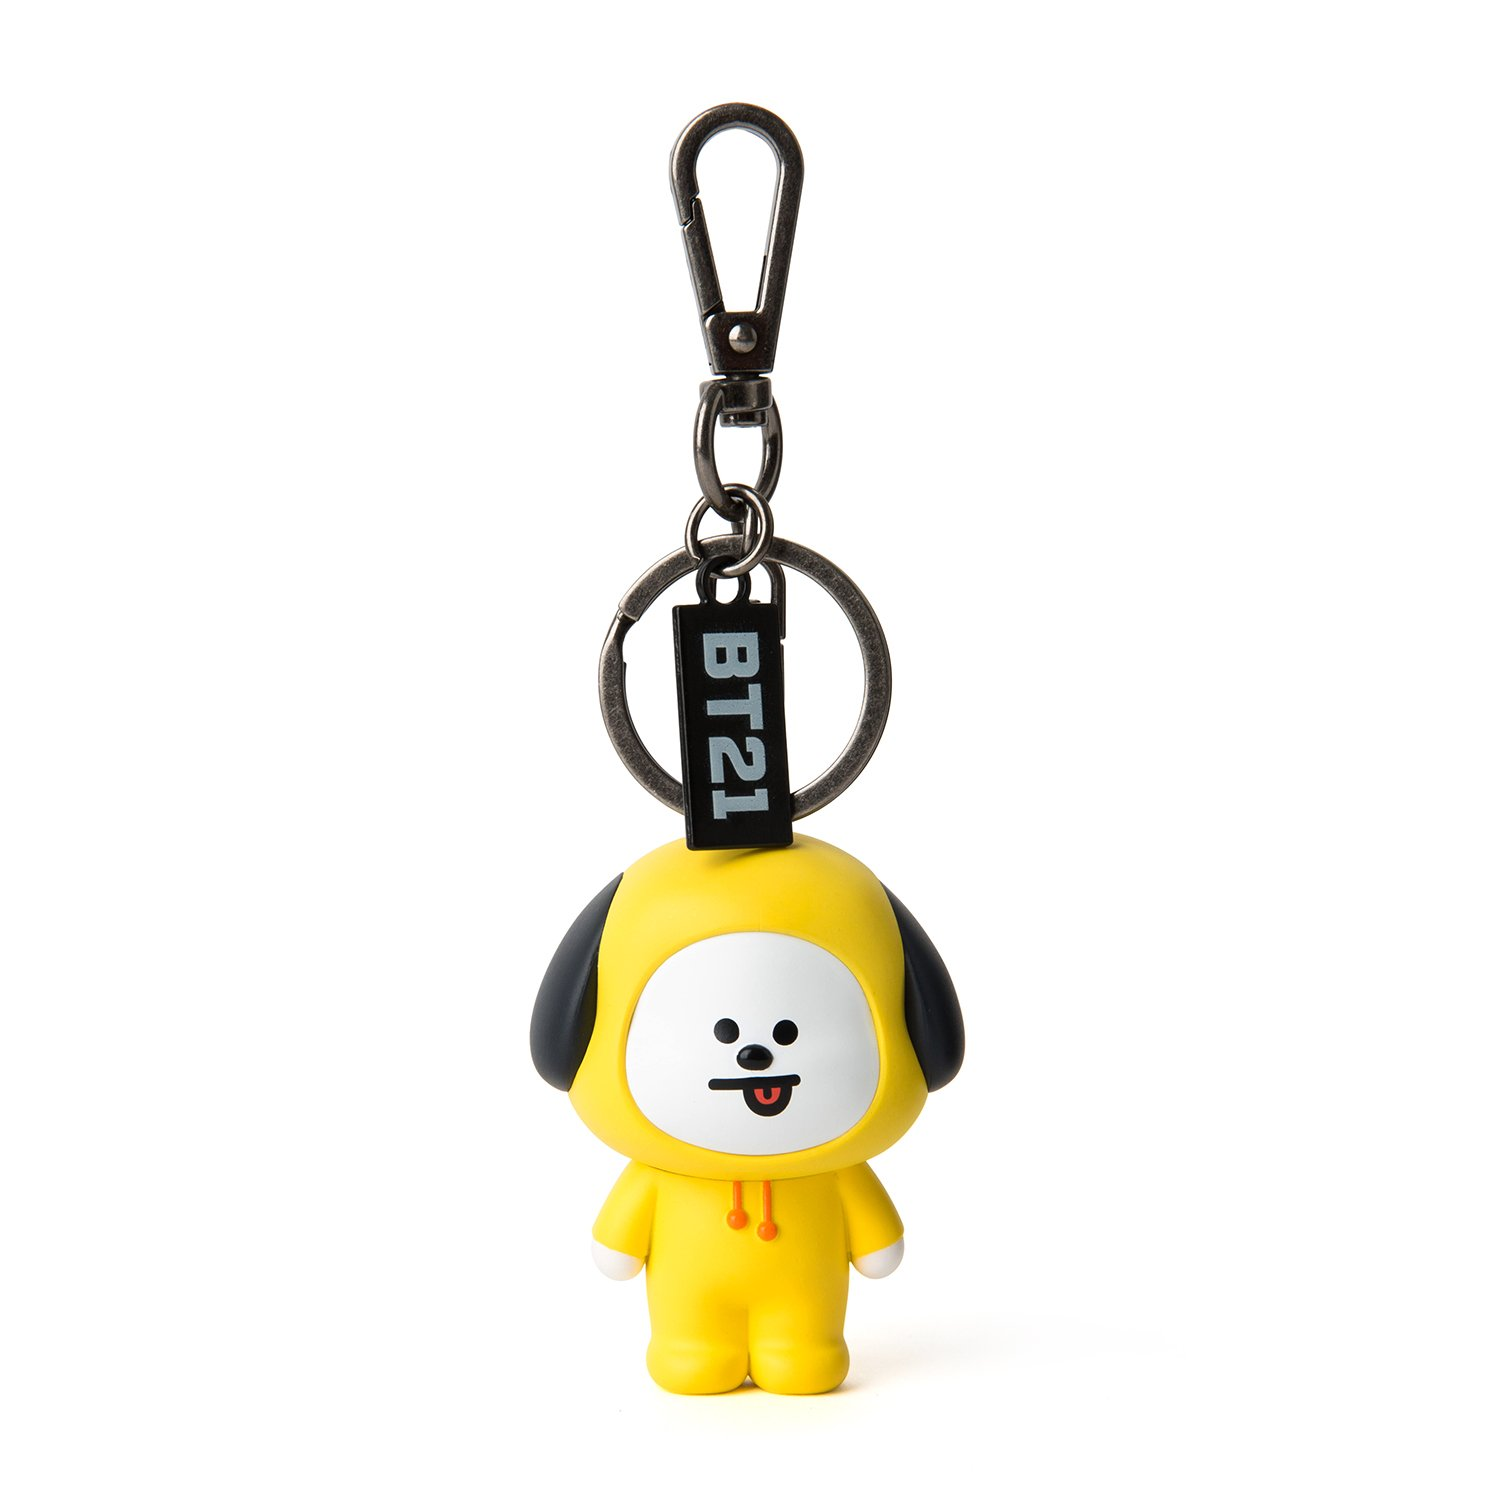 BT21 Chimmy Figure Key Ring One Size Authentic Product from Linefriends